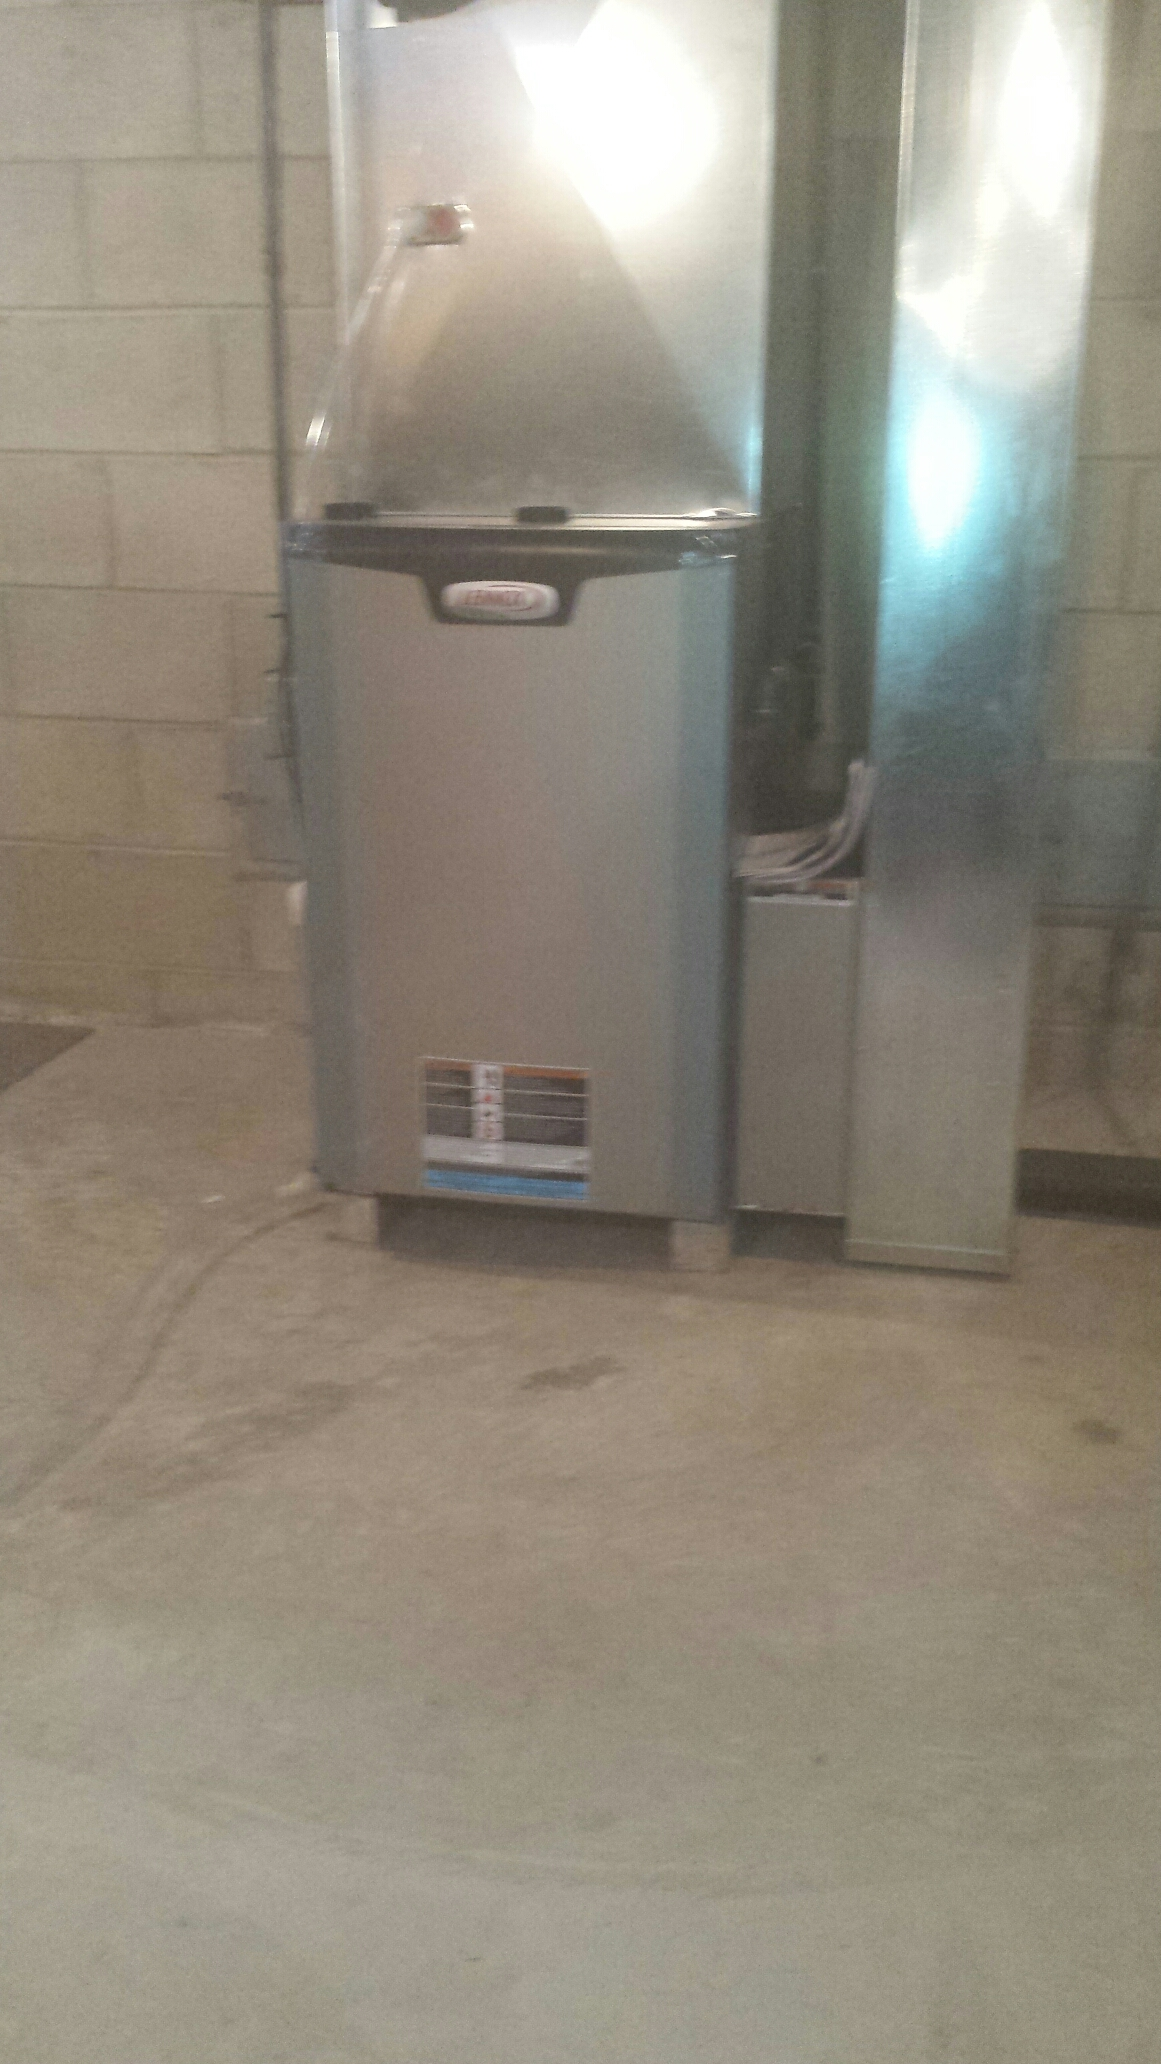 Relocating a furnace. Replacing with a new Two stage Elite  Lennox  furnace